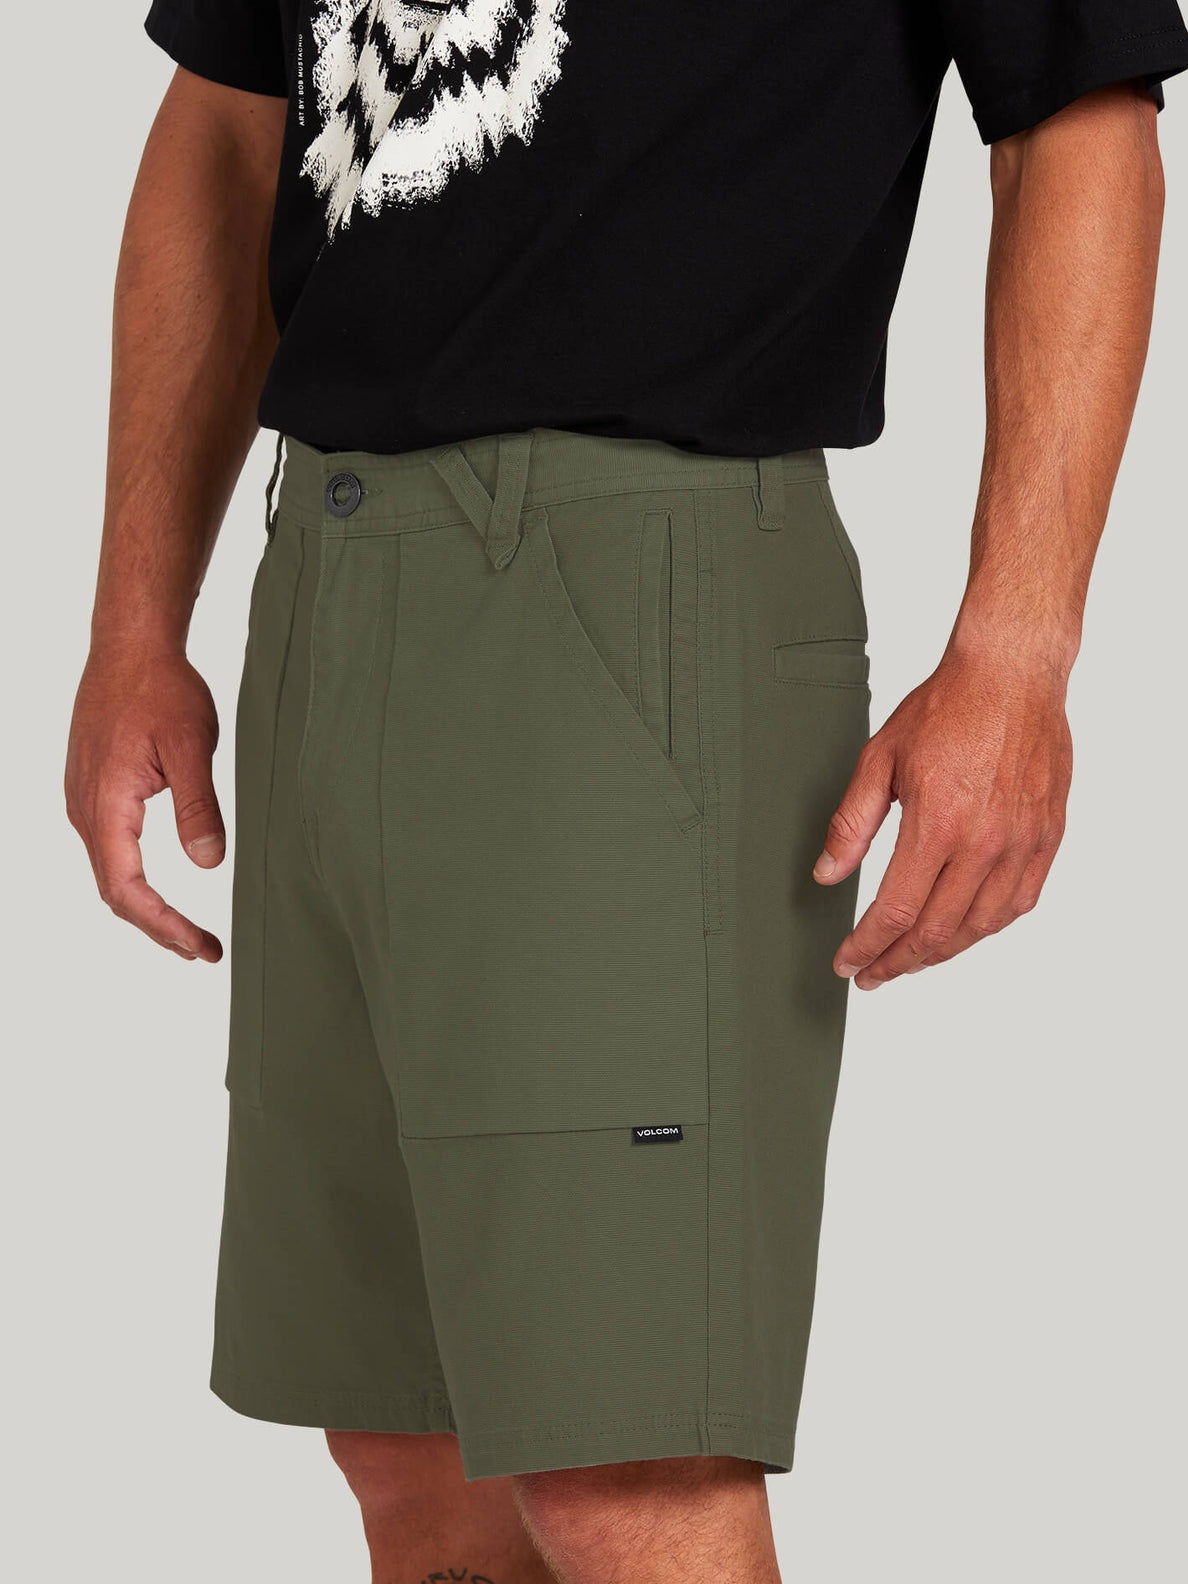 Clockworks Shorts - Army Green Combo (A0922000_ARC) [4]